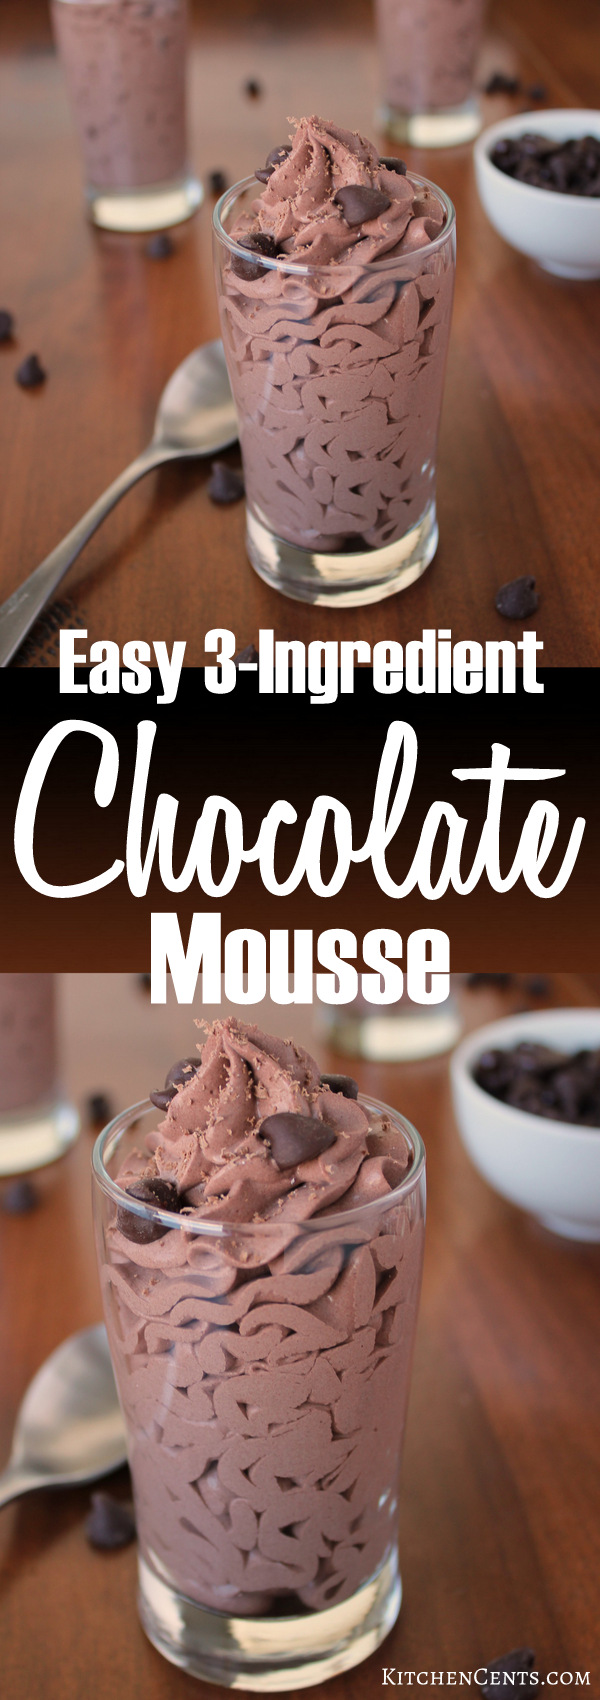 Easy 3-Ingredient Chocolate Mousse | Kitchen Cents